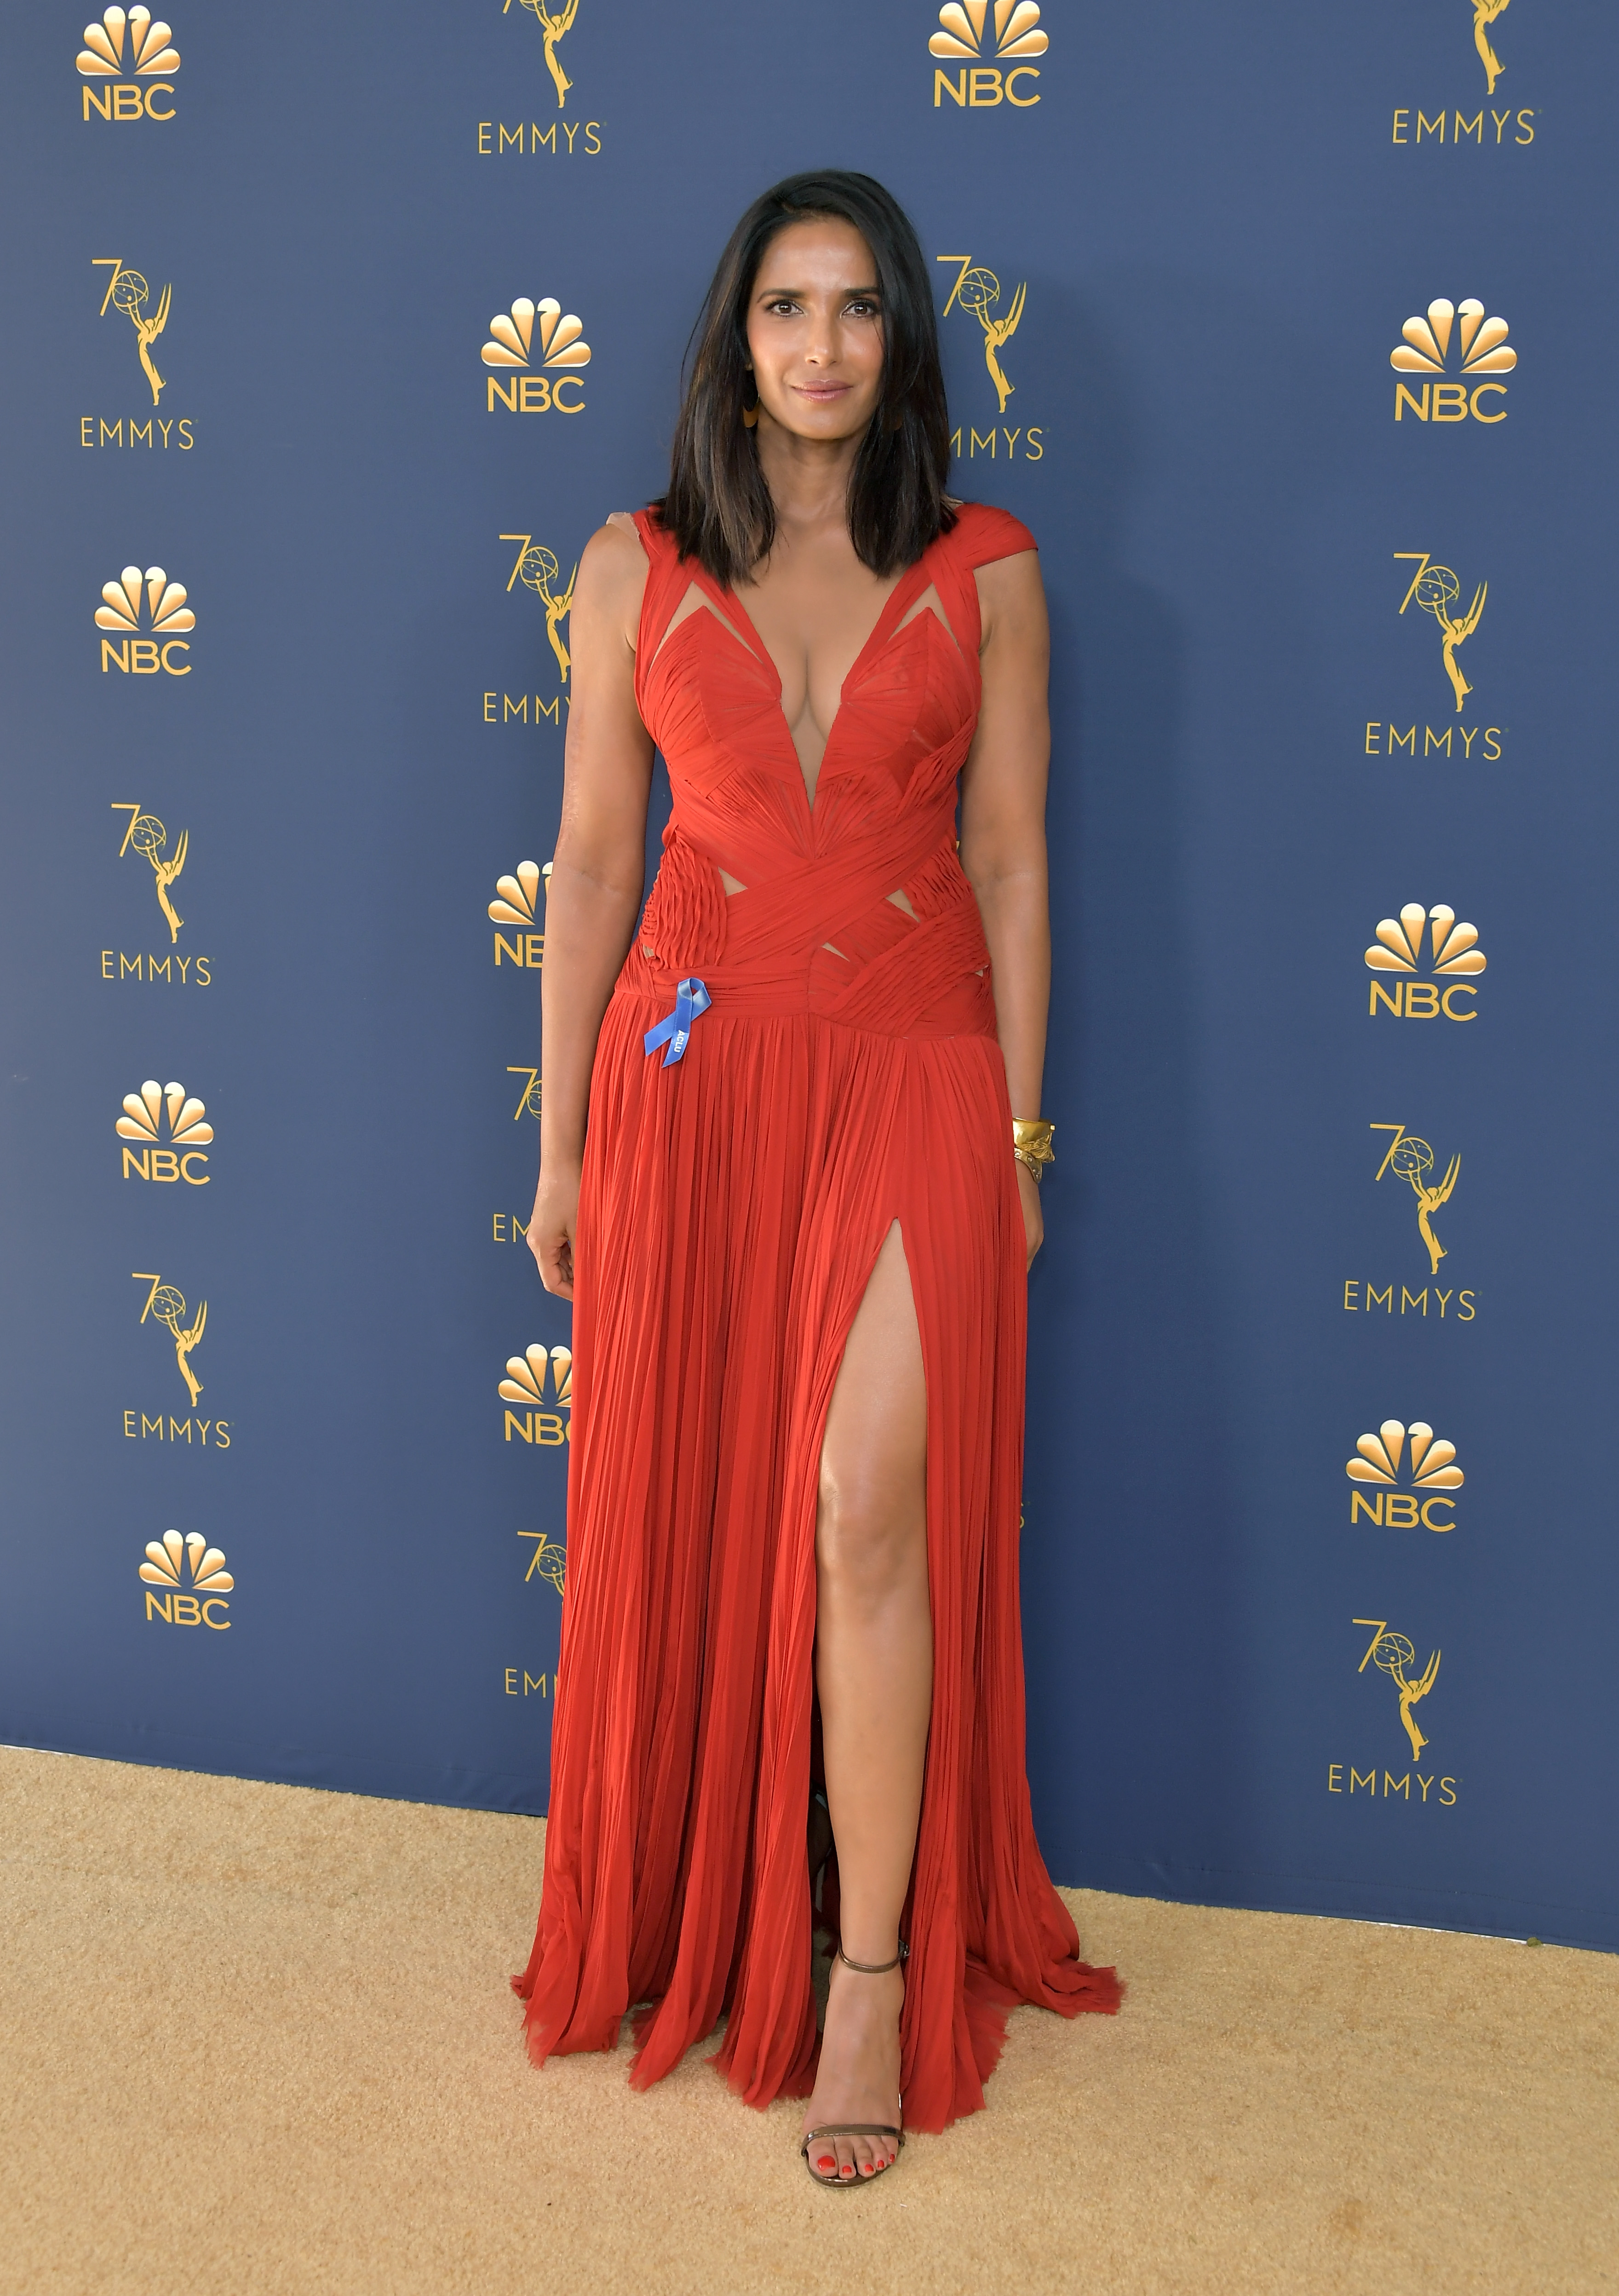 Padma Lakshmi attends the 70th Emmy Awards at Microsoft Theater on September 17, 2018 in Los Angeles, California.